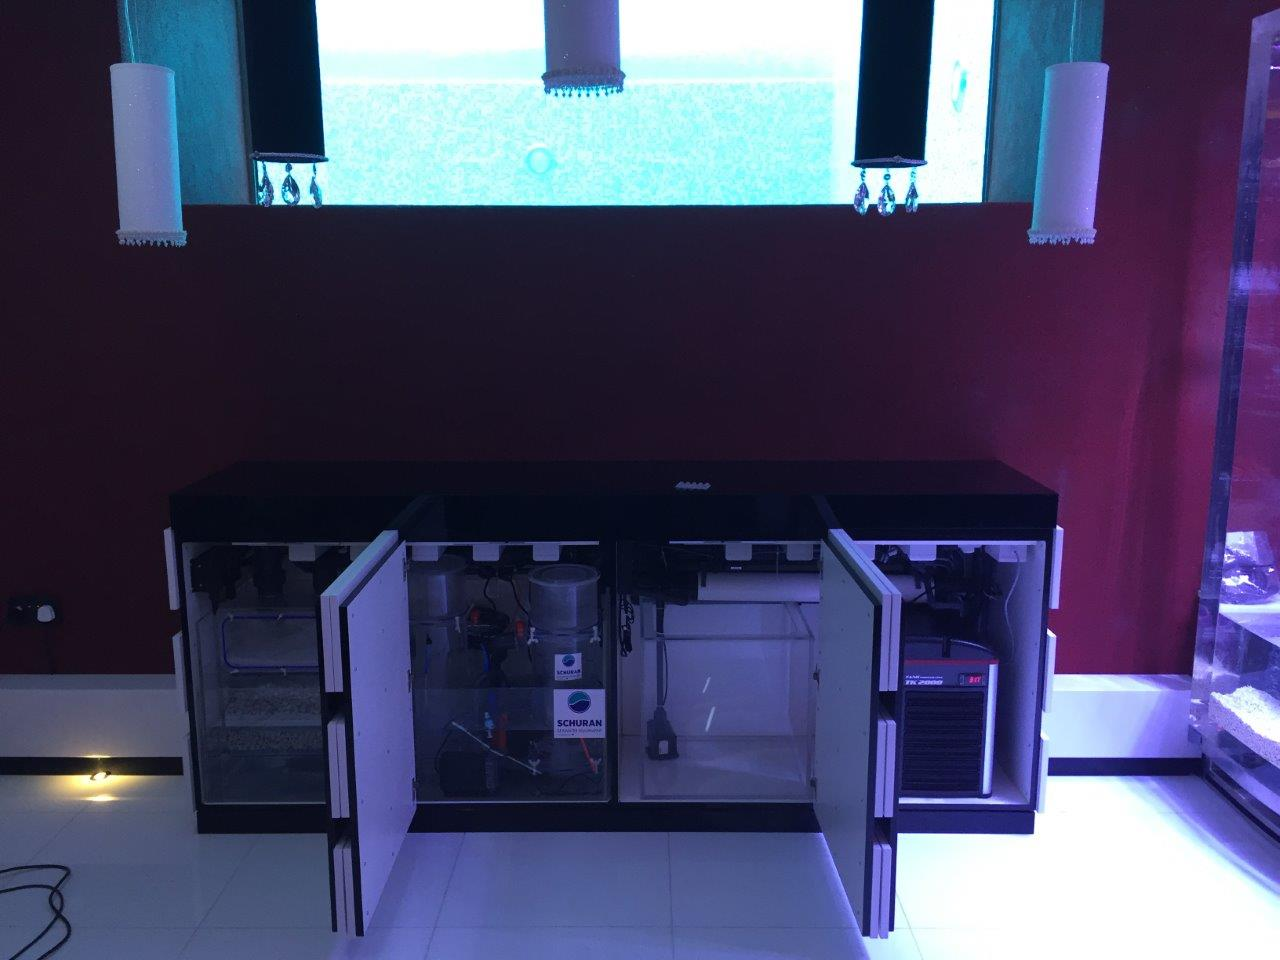 equipment cabinet opened showing